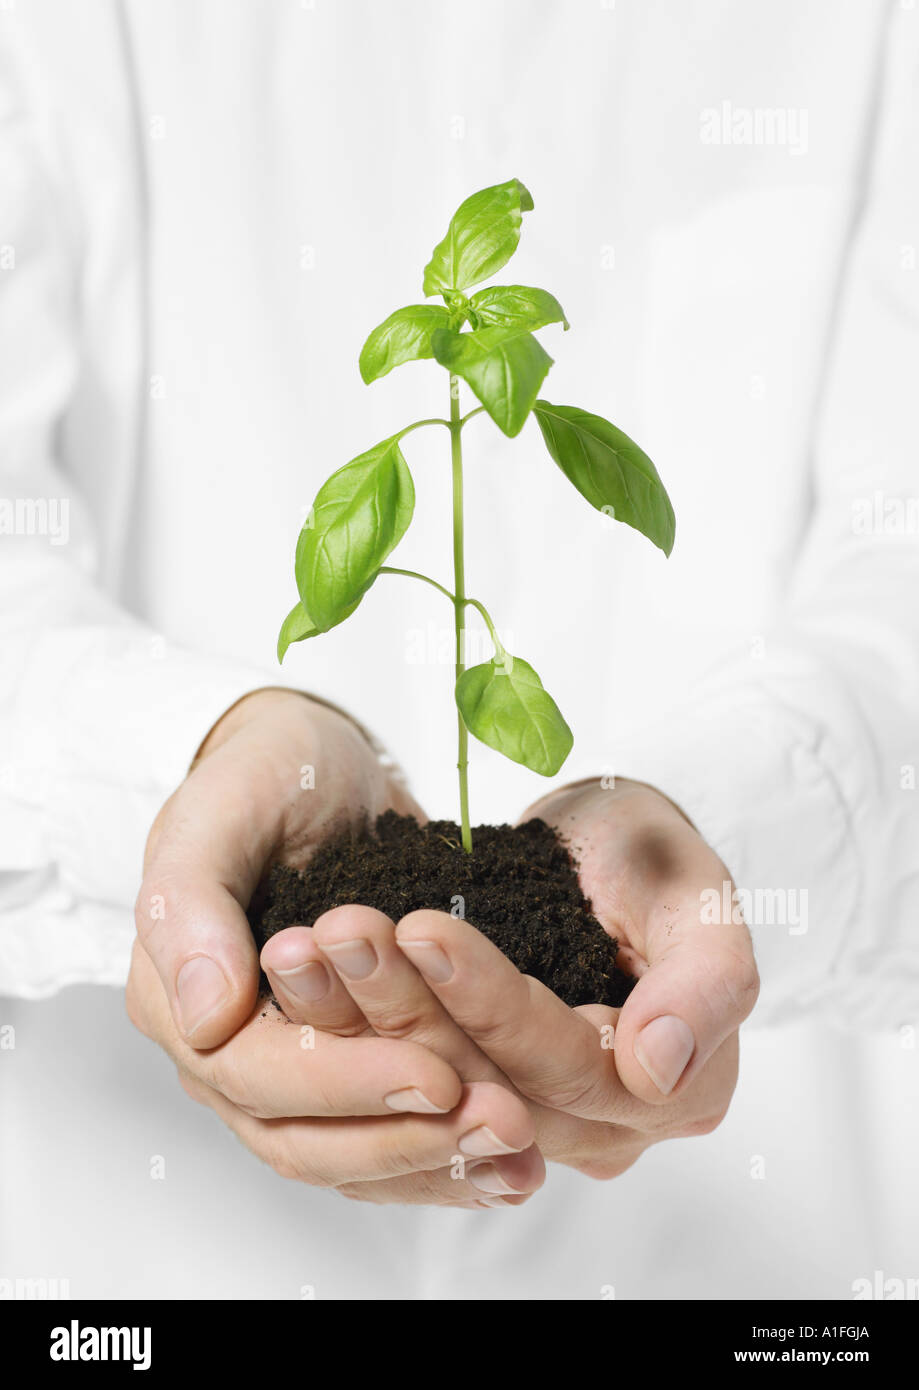 Hands holding small basil plant in loose soil - Stock Image